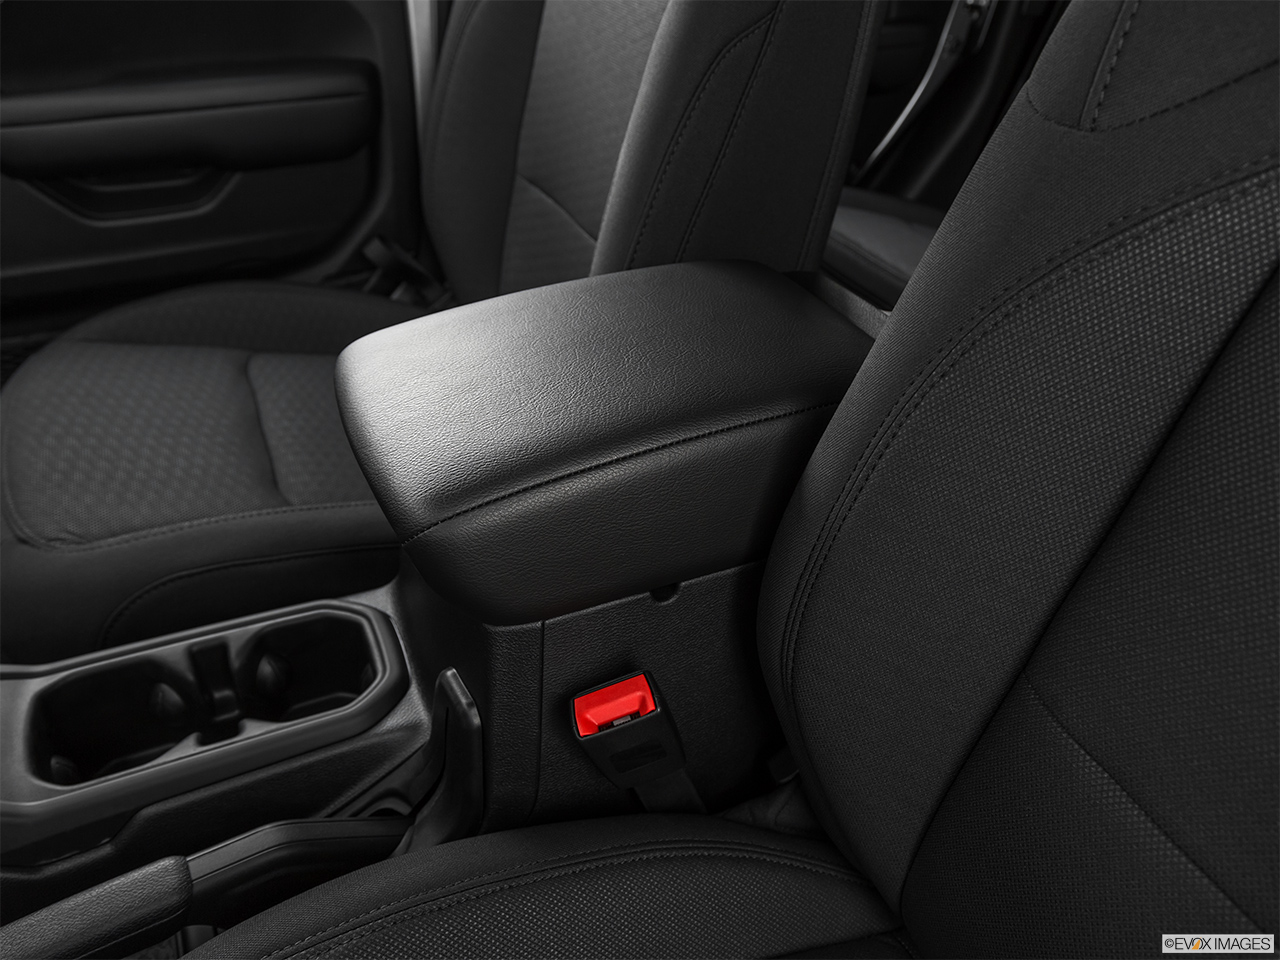 2020 Jeep Gladiator Sport S Front center console with closed lid, from driver's side looking down